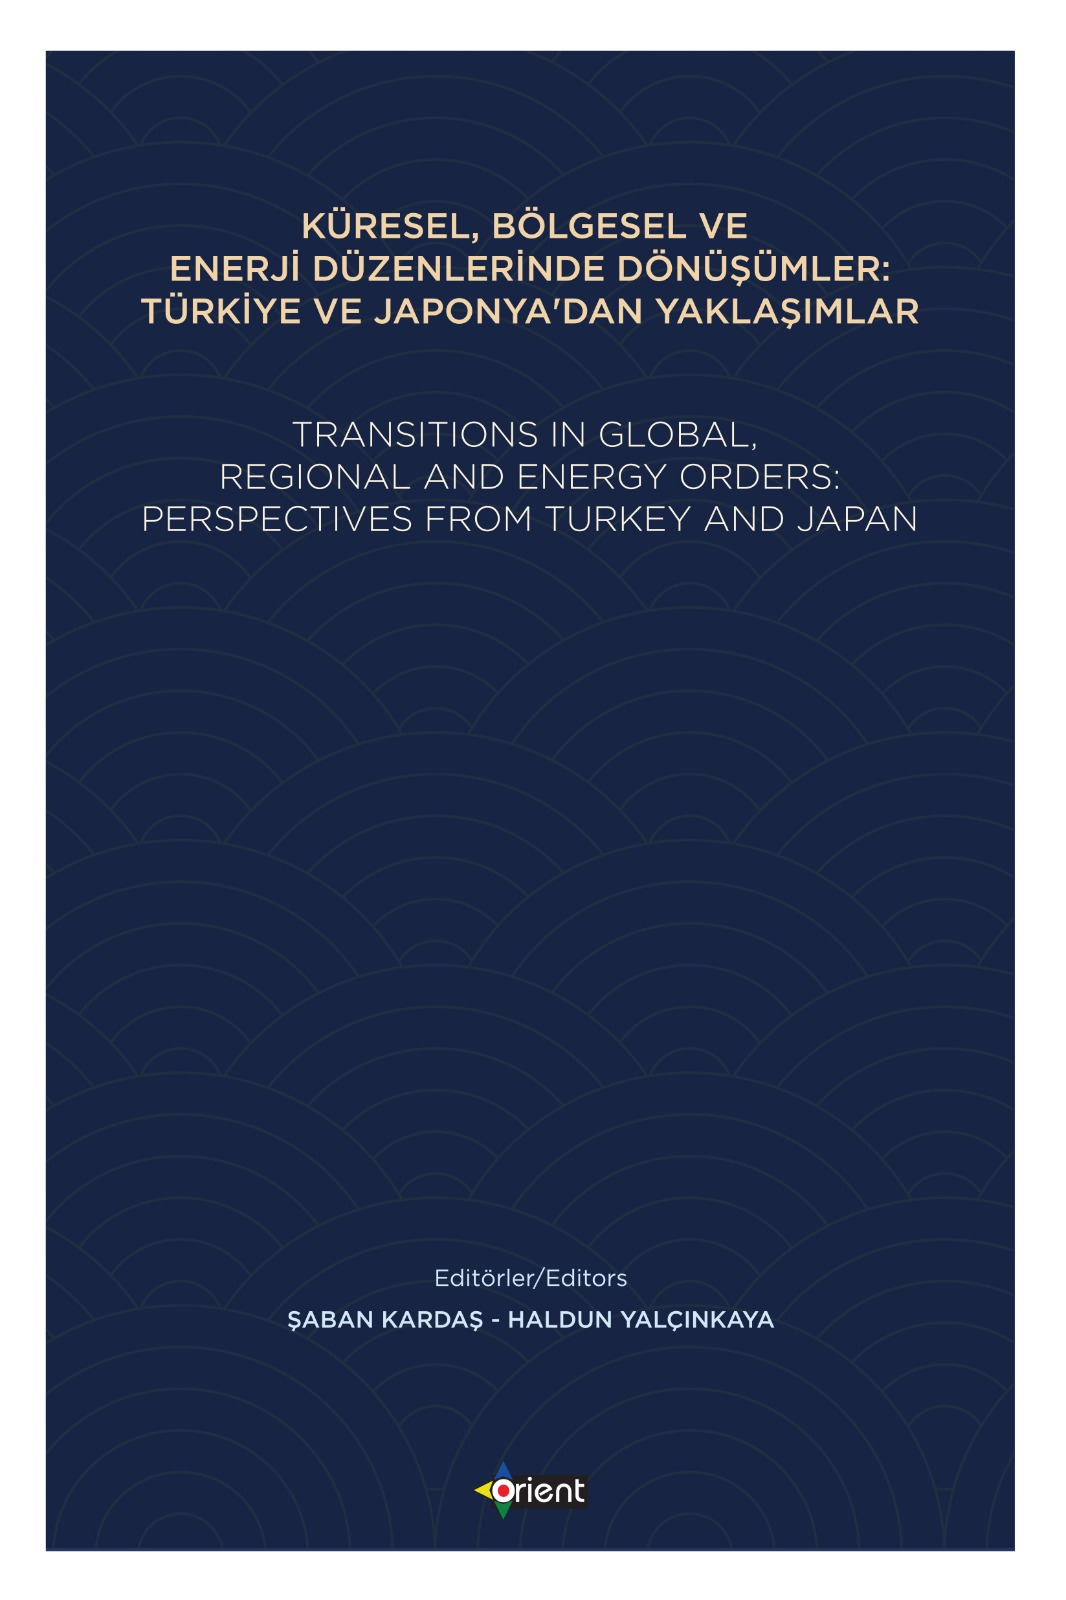 Küresel, Bölgesel ve Enerji Düzenlerinde Dönüşümler: Türkiye ve Japonya'dan Yaklaşımlar - Transitions In Global, Regional and Energy Orders: Perspectives From Turkey and Japan